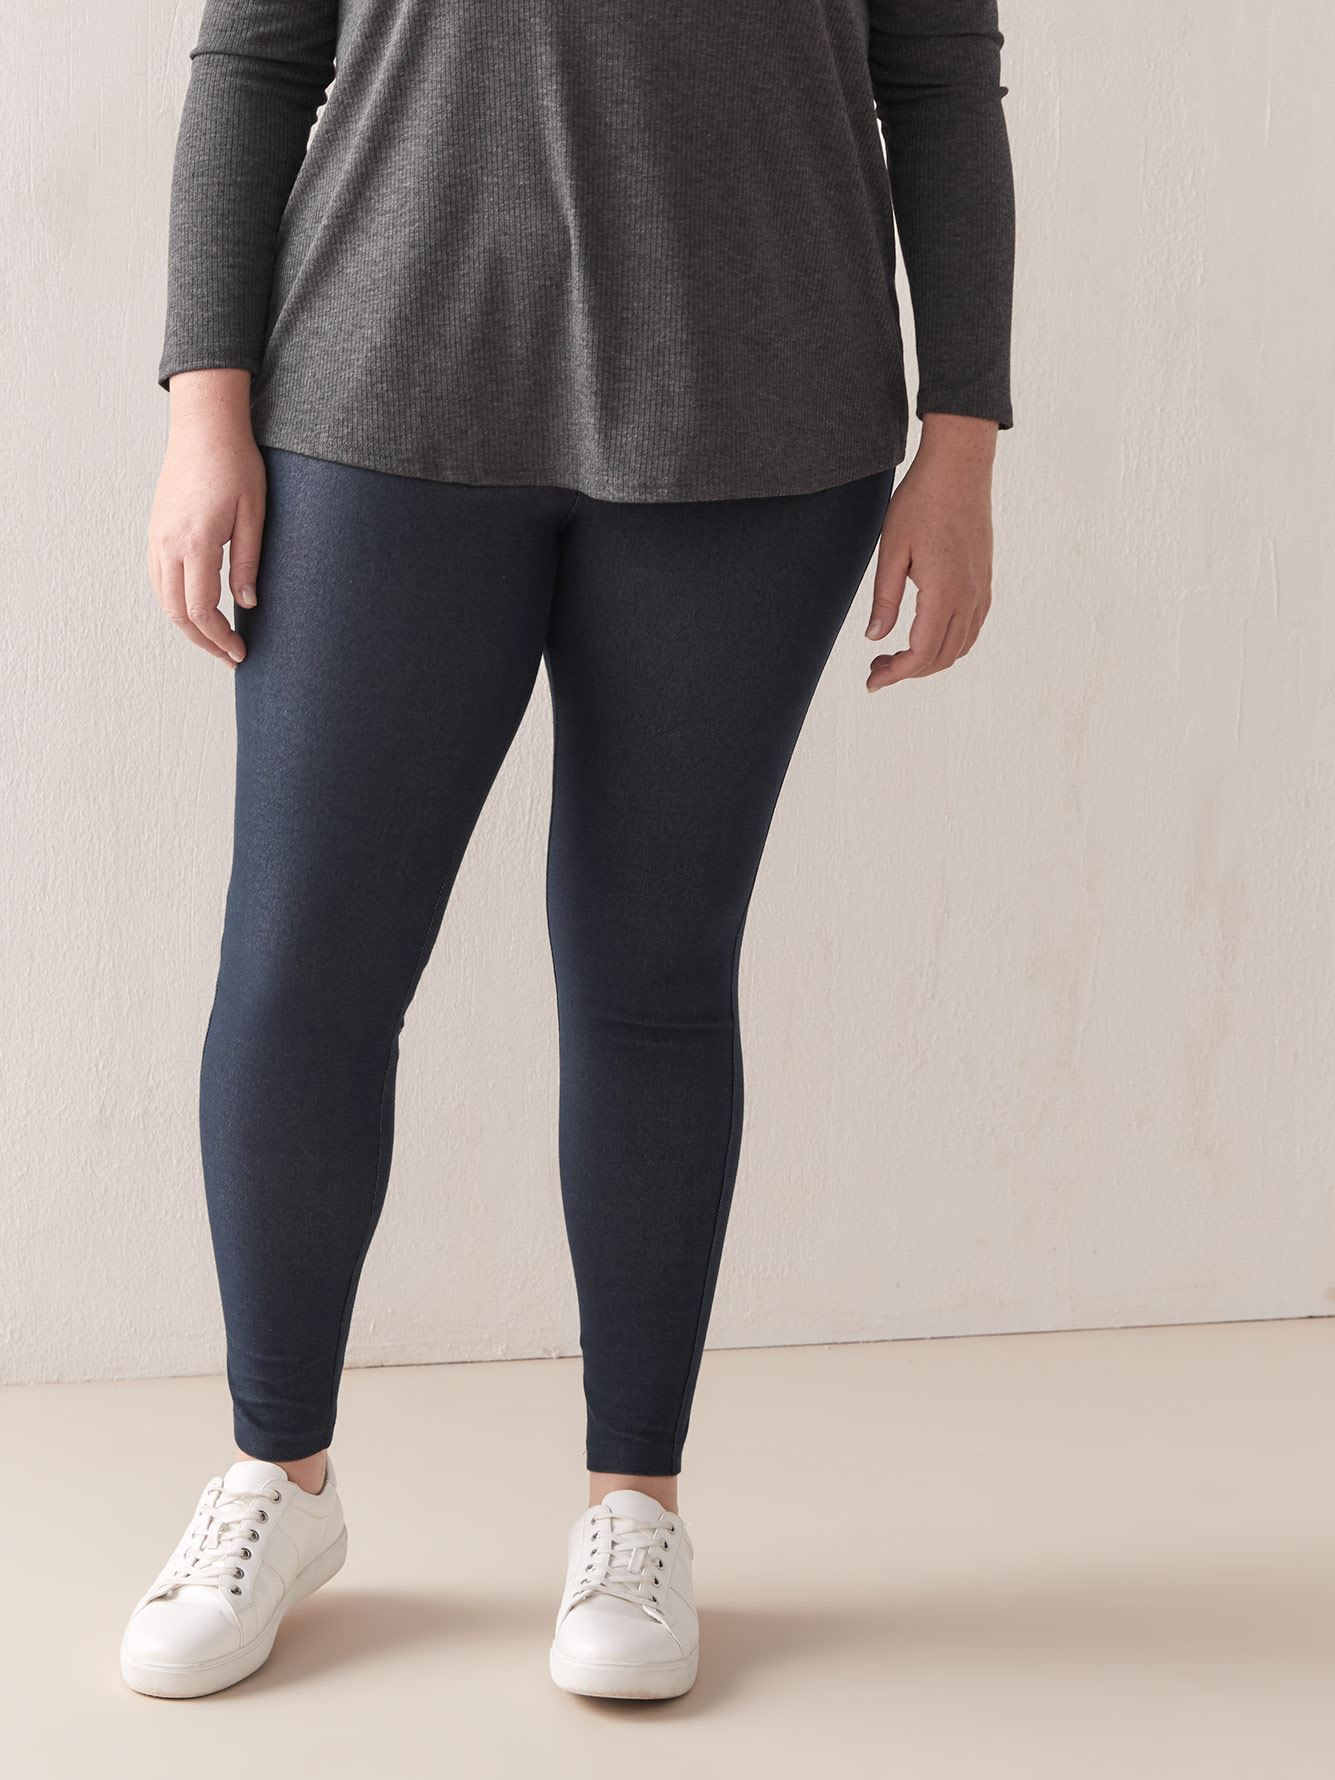 Petite Denim Leggings with Elastic Waistband - Addition Elle